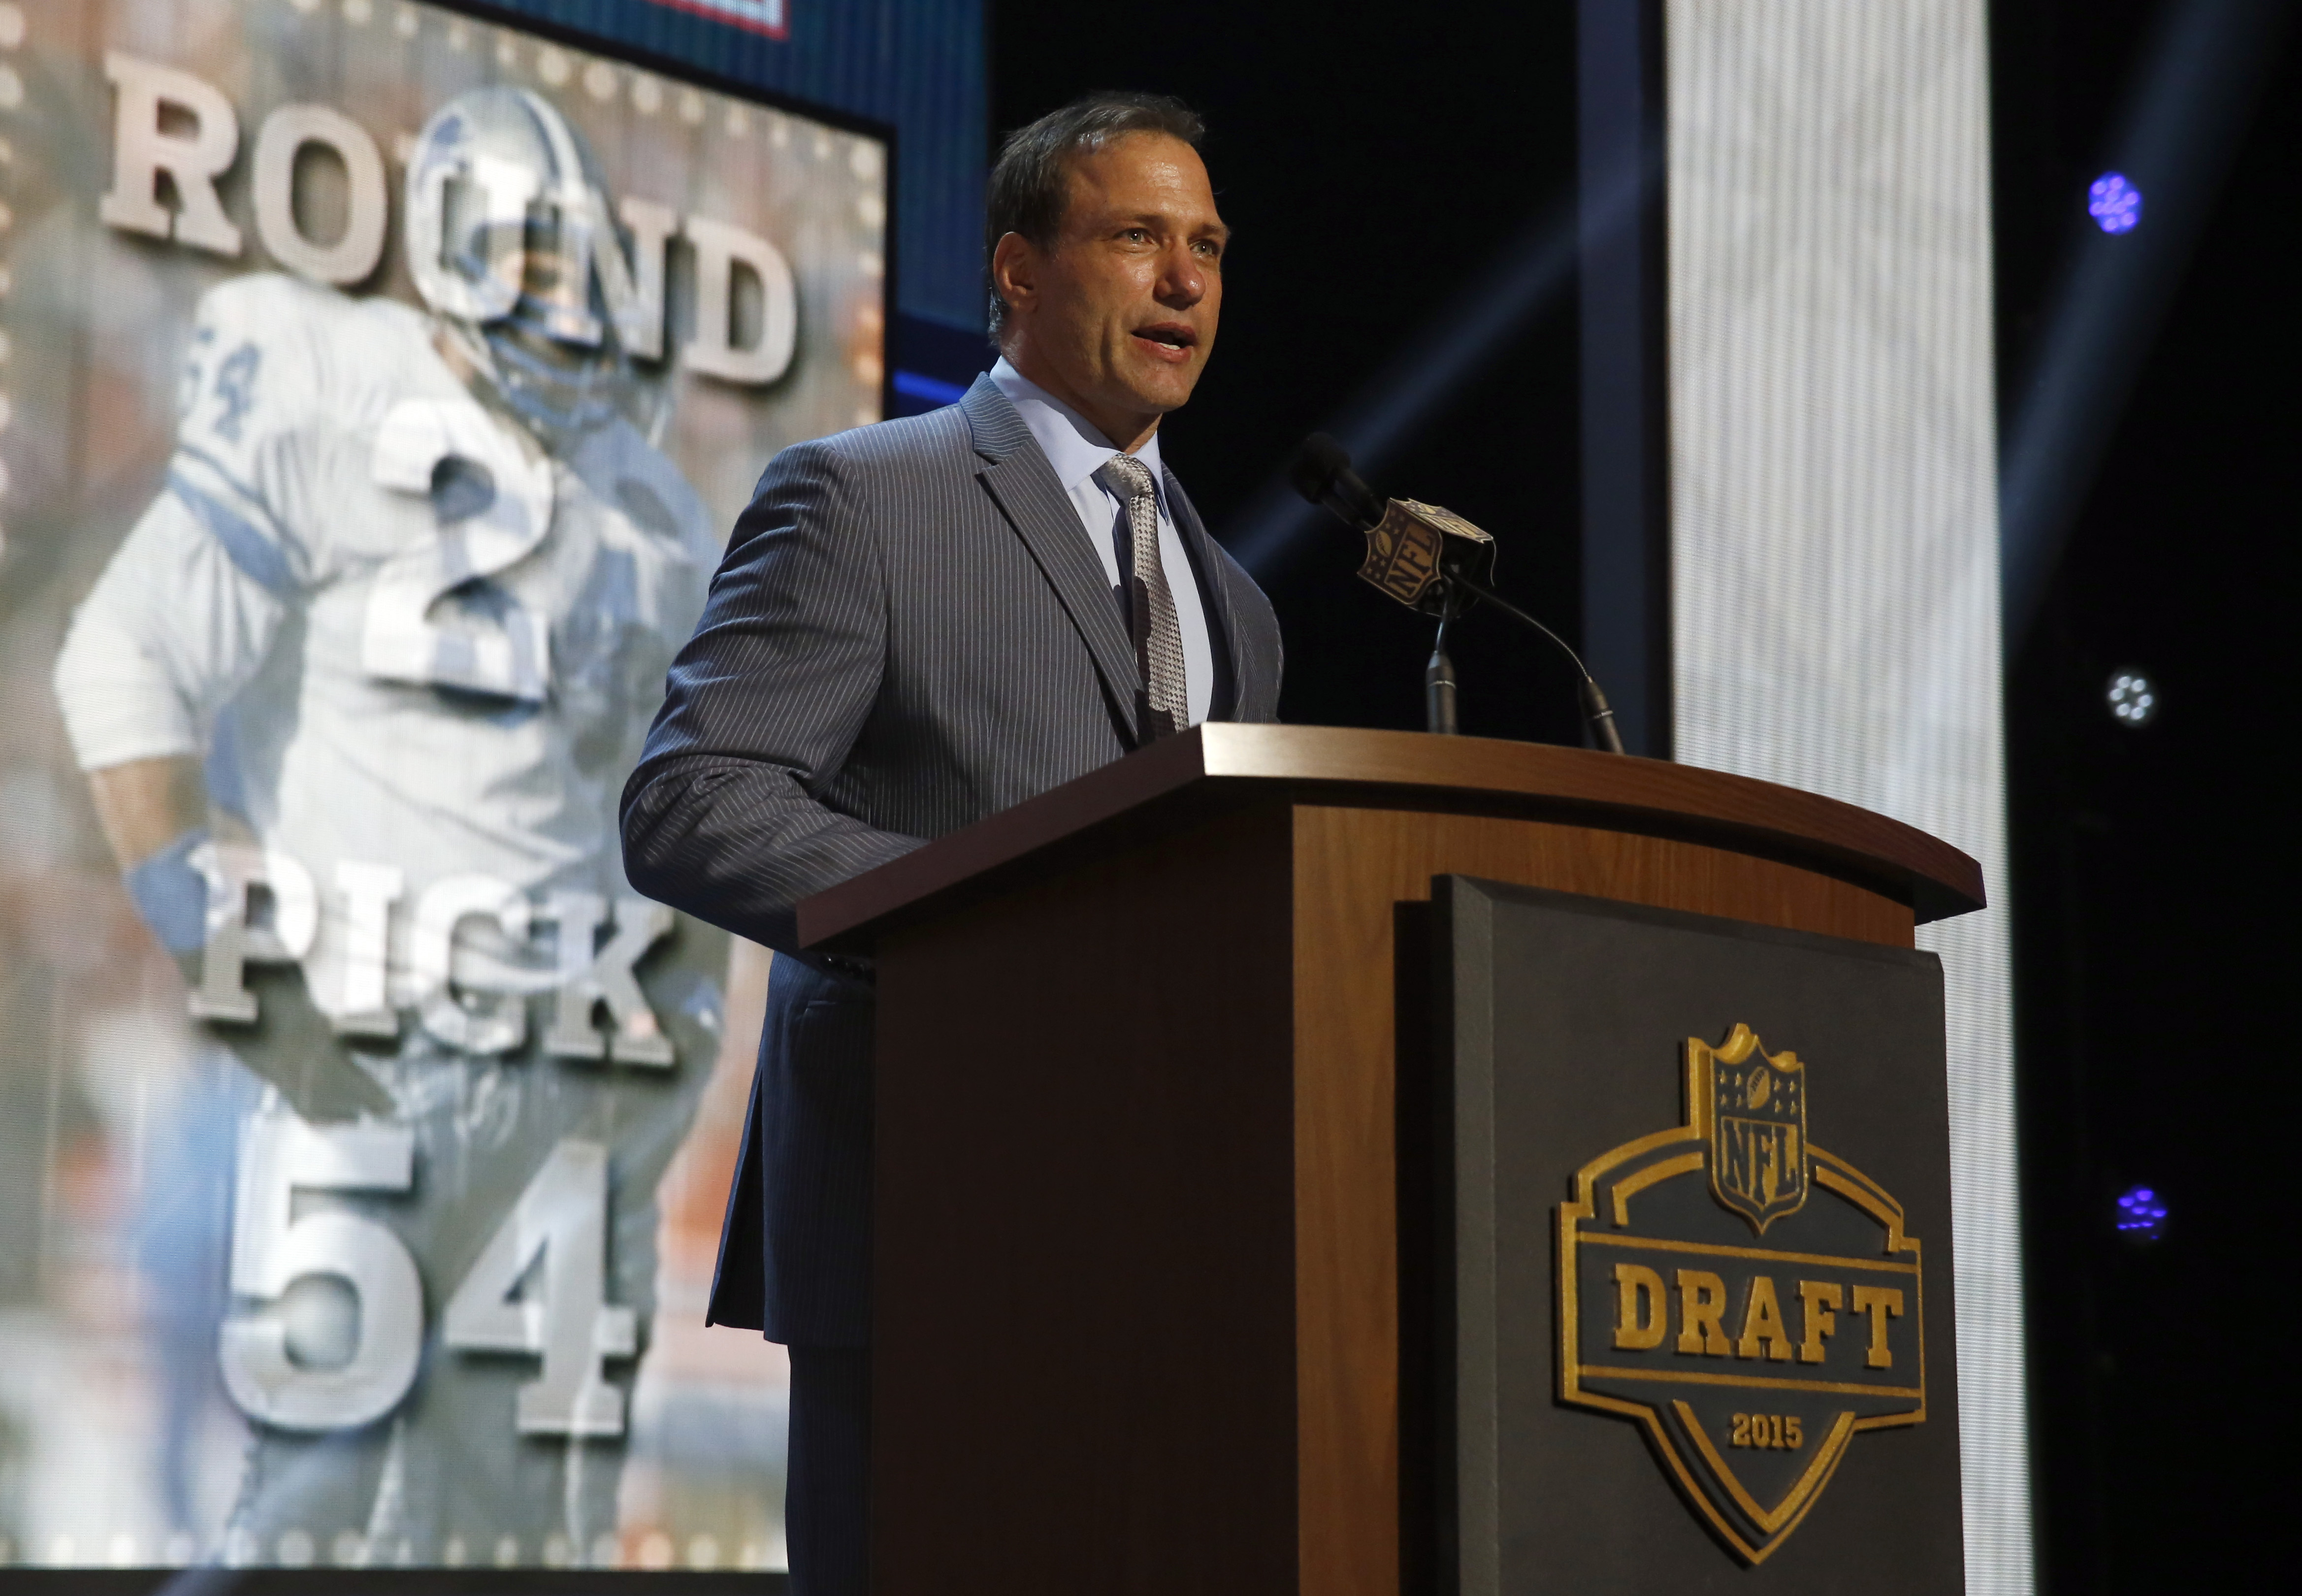 Former Detroit Lions player Chris Spielman announces that the Detroit Lions selects Nebraska running back Ameer Abdullah-as the 54th pick in the second round of the 2015 NFL Football Draft,  Friday, May 1, 2015, in Chicago. (AP Photo/Charles Rex Arbogast)